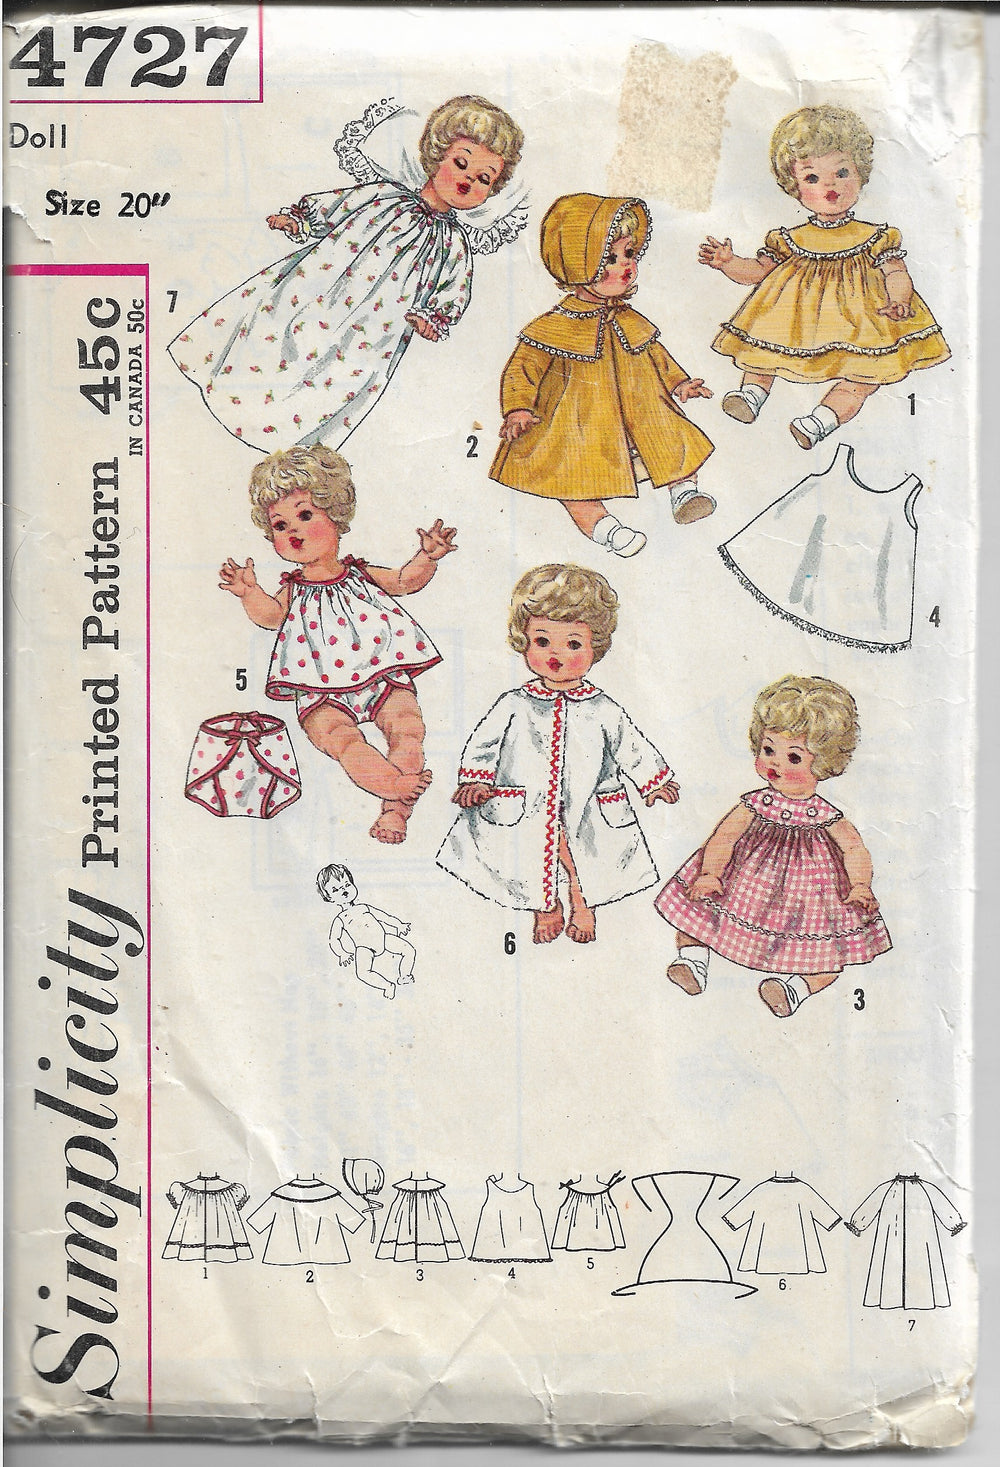 Simplicity 4727 Doll Wardrobe Pattern Betsy Carrie Vintage Sewing Pattern 1960s - VintageStitching - Vintage Sewing Patterns